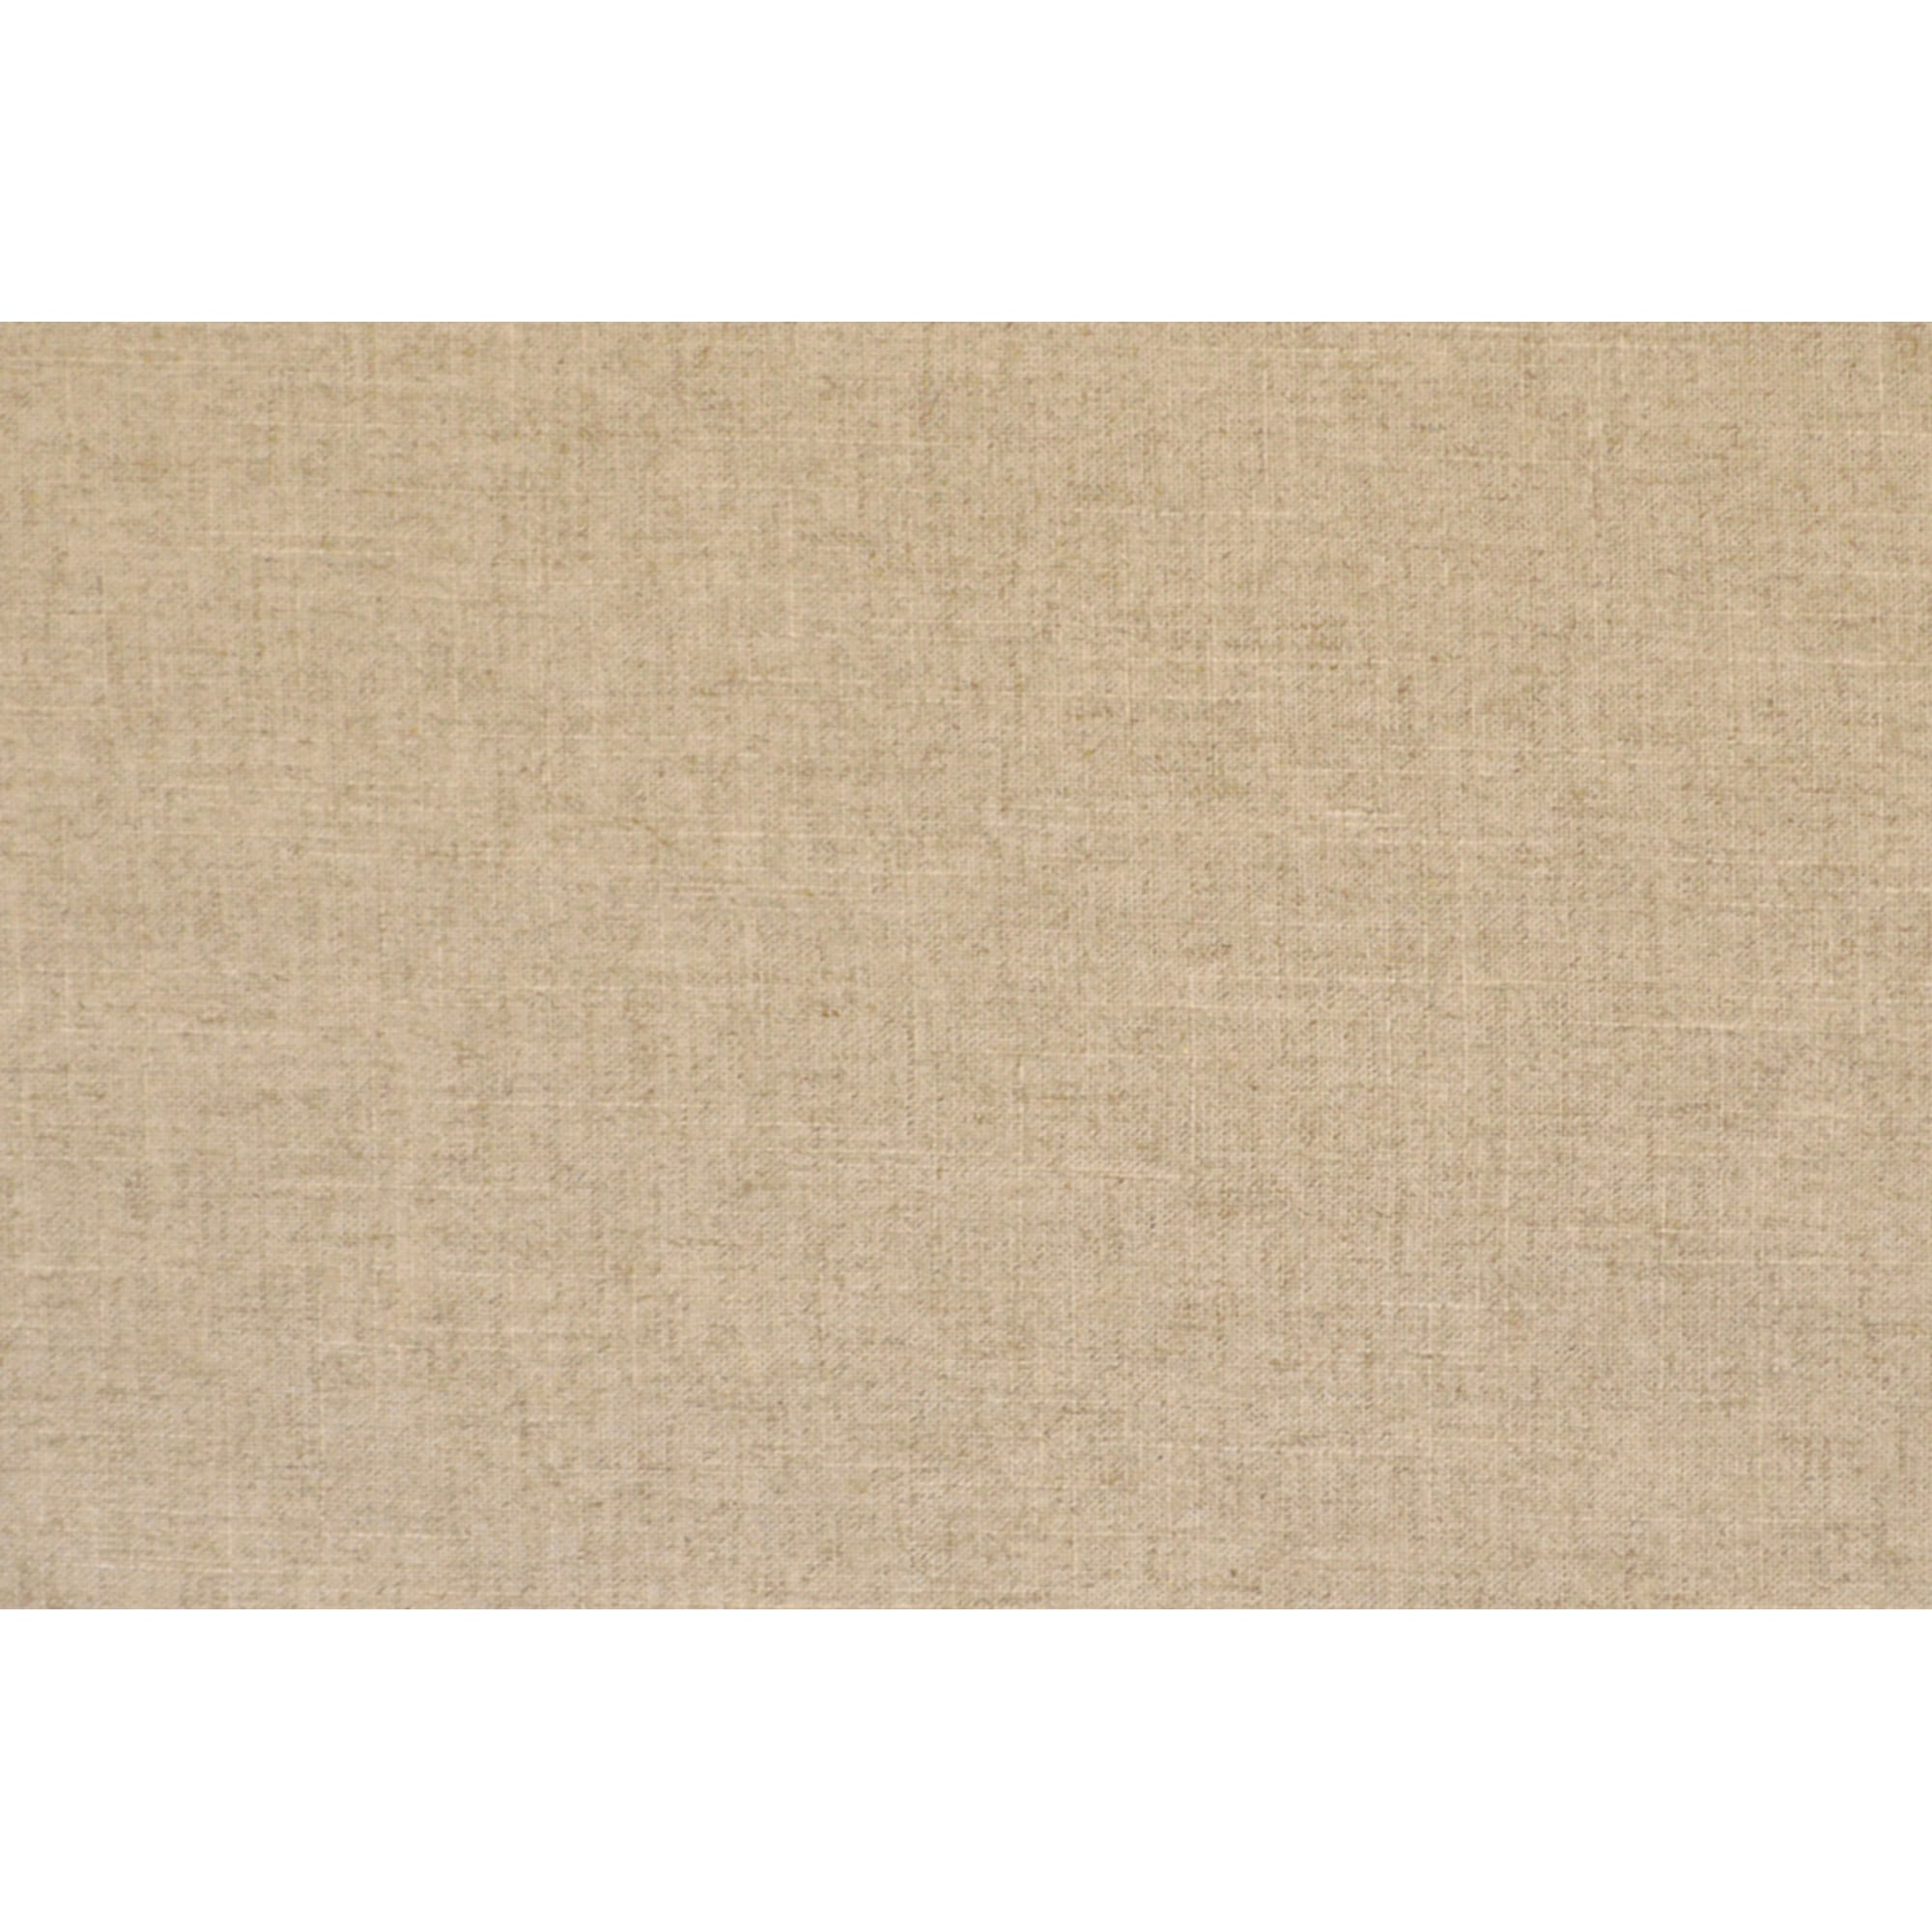 Image for 1533-091 Perth Linen from Hekman Official Website